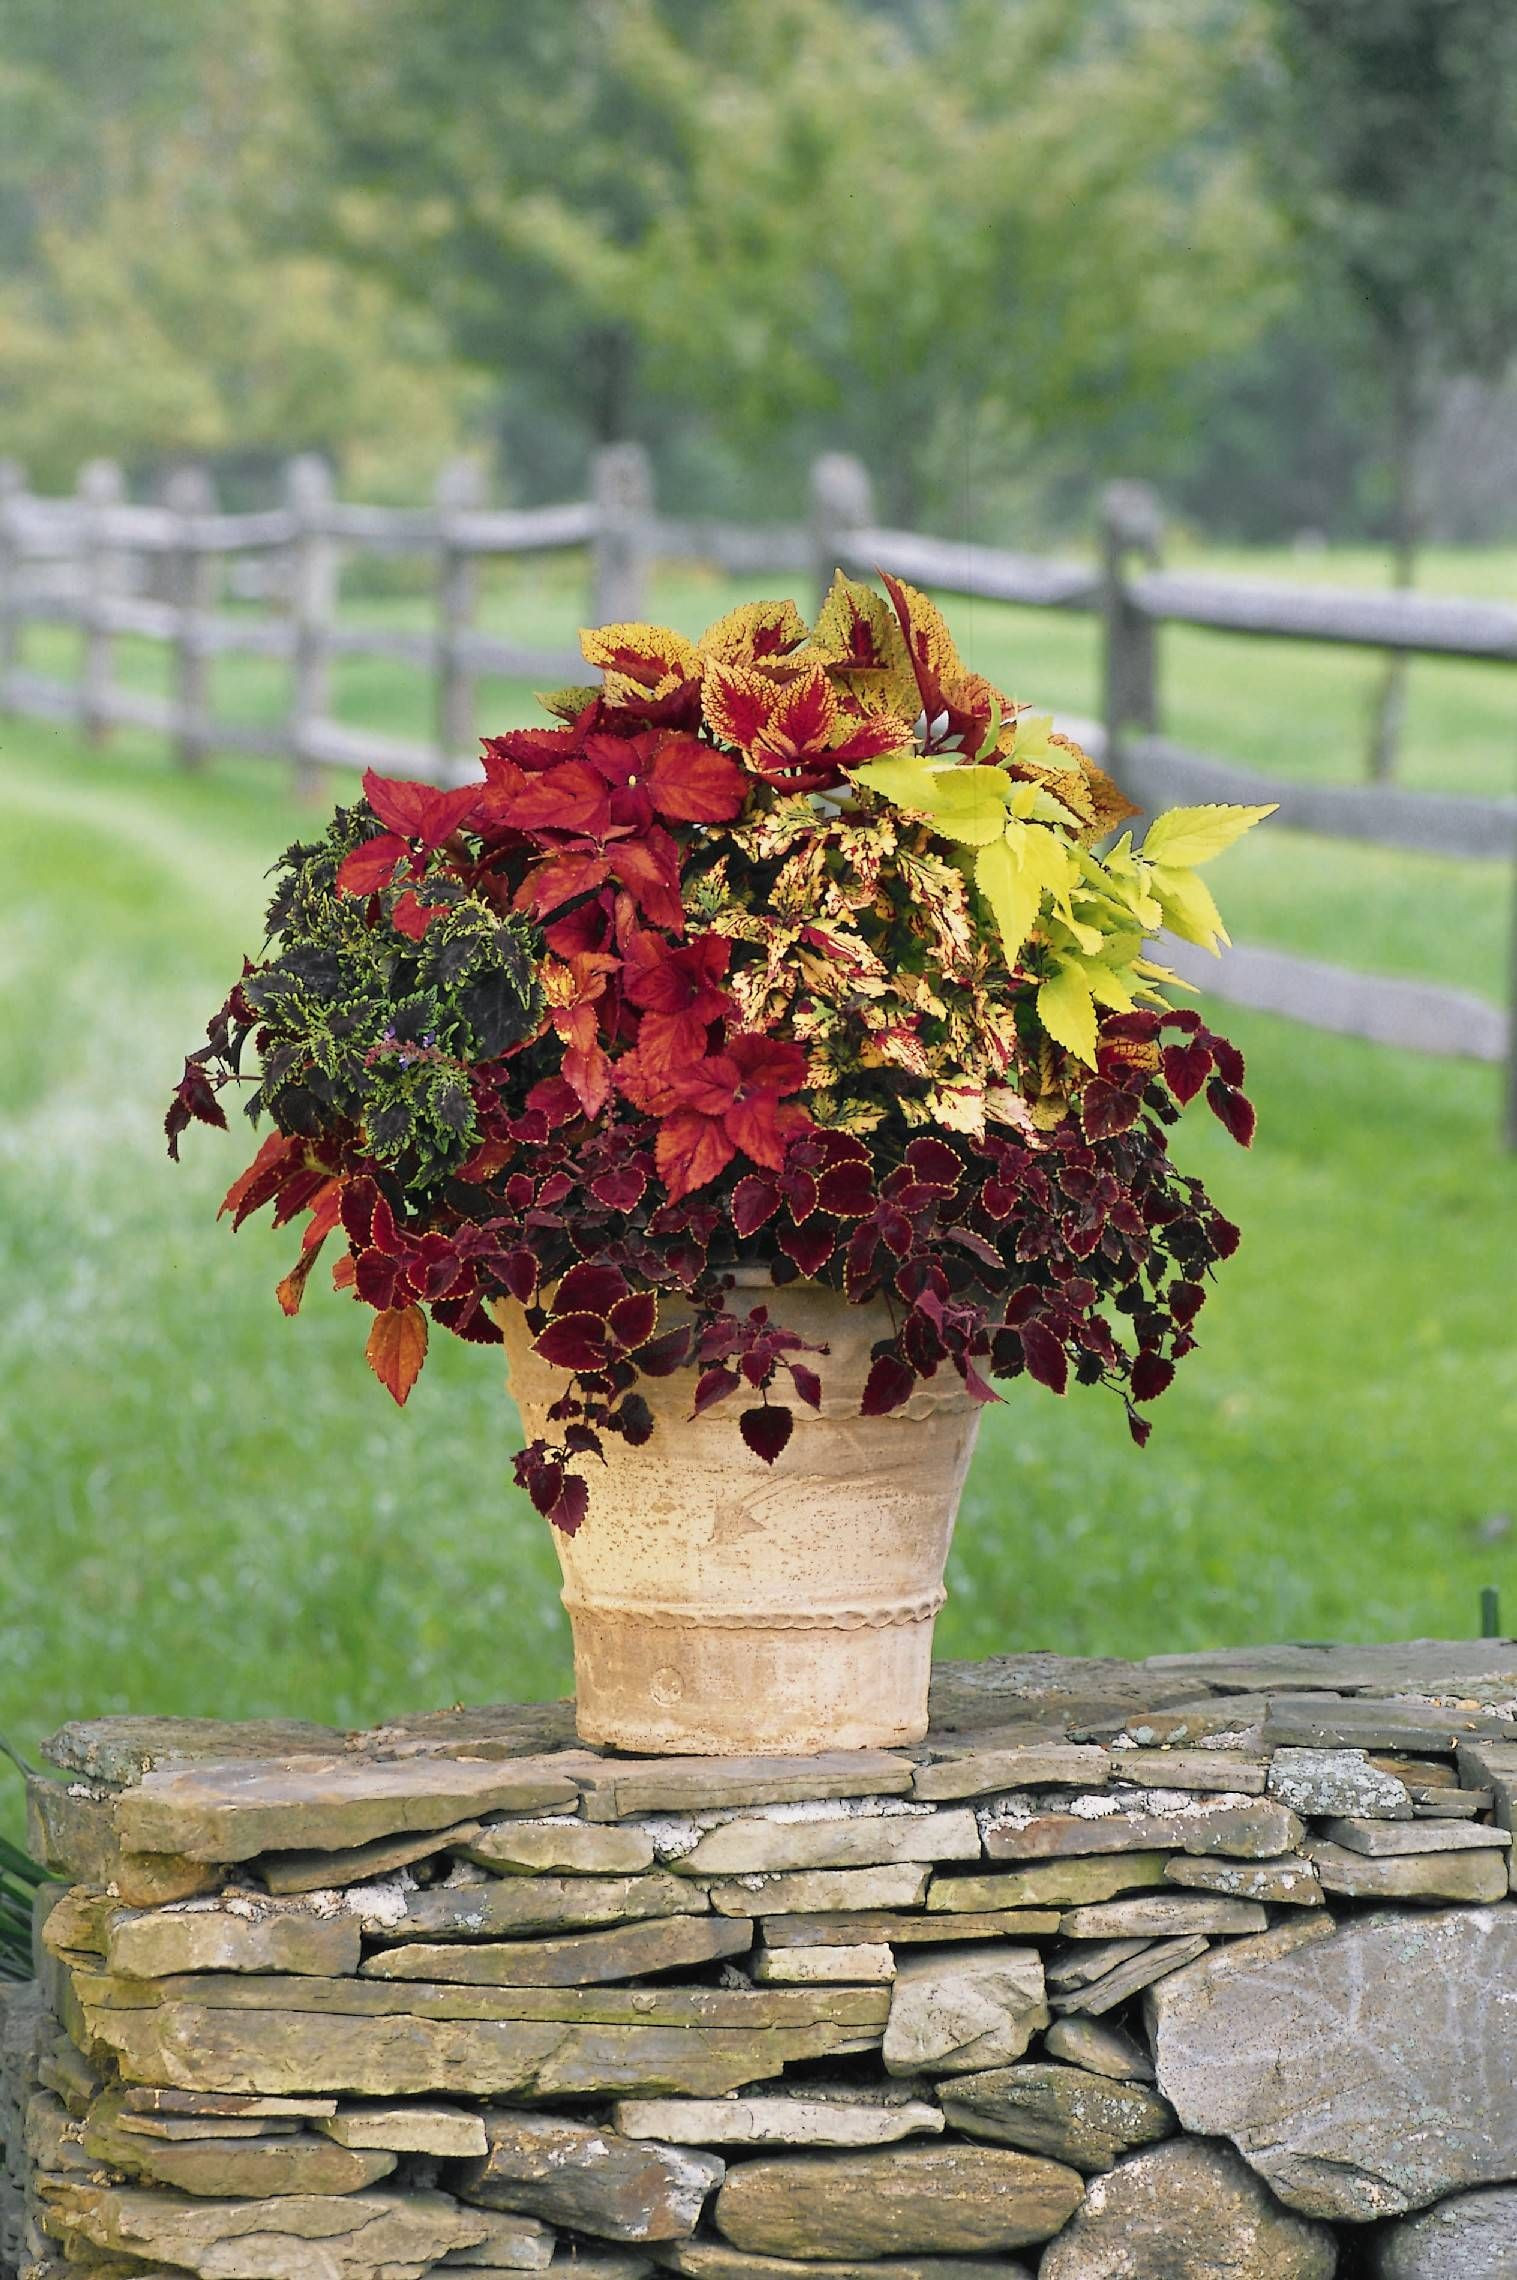 Coleus great container plant for shady areas and beginning gardeners Me me me again